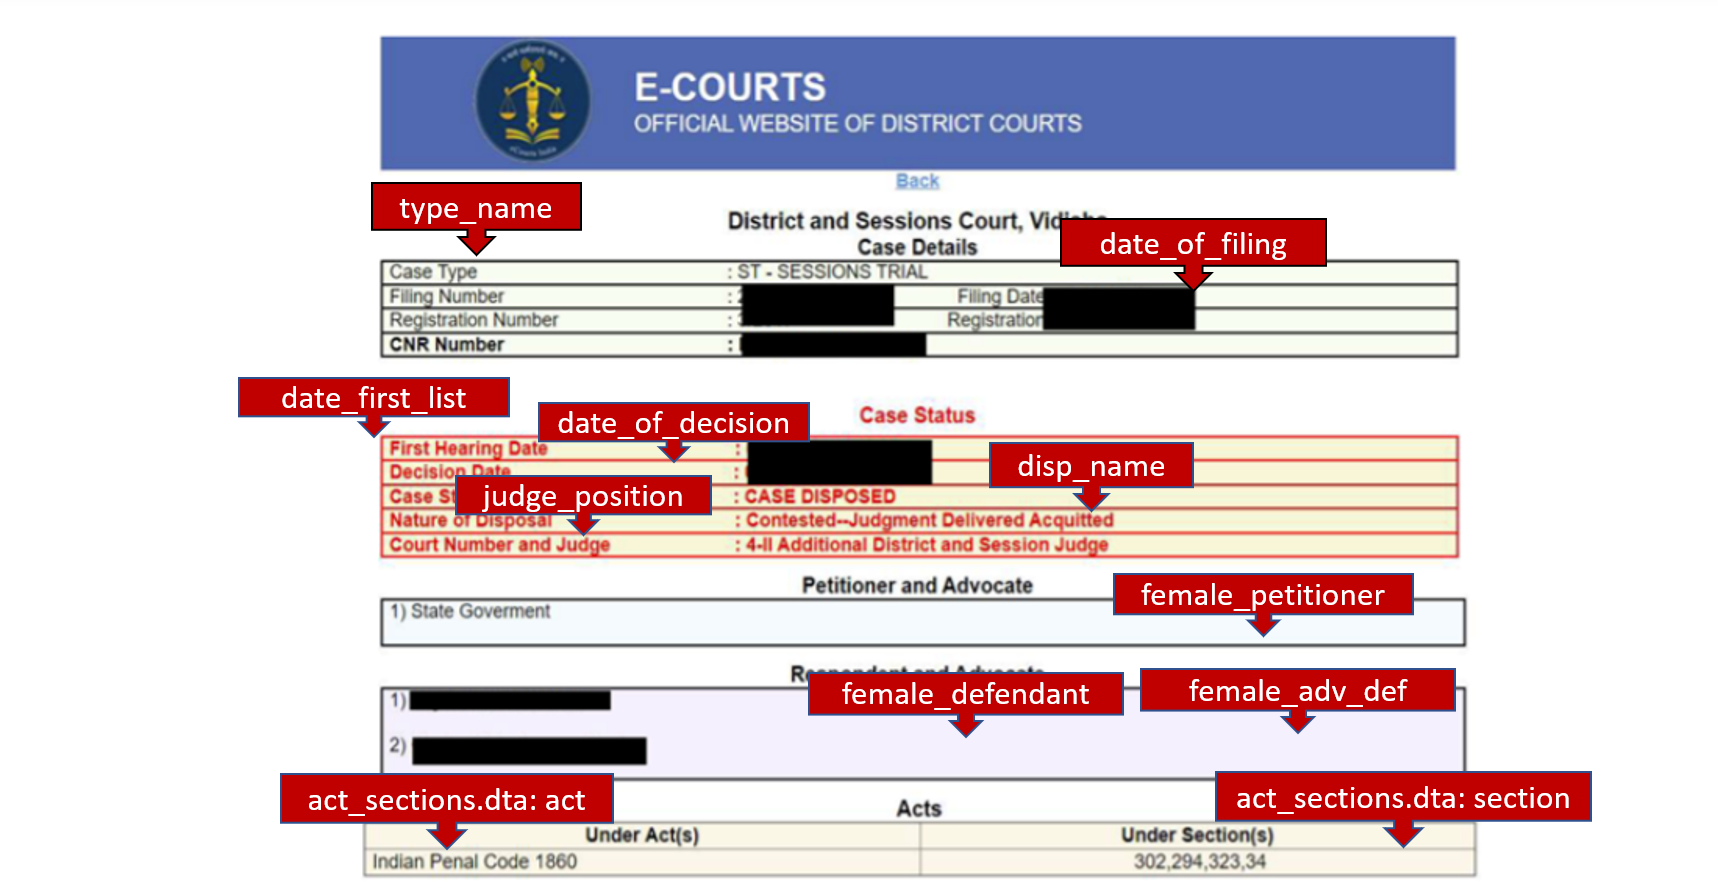 E-Courts variables